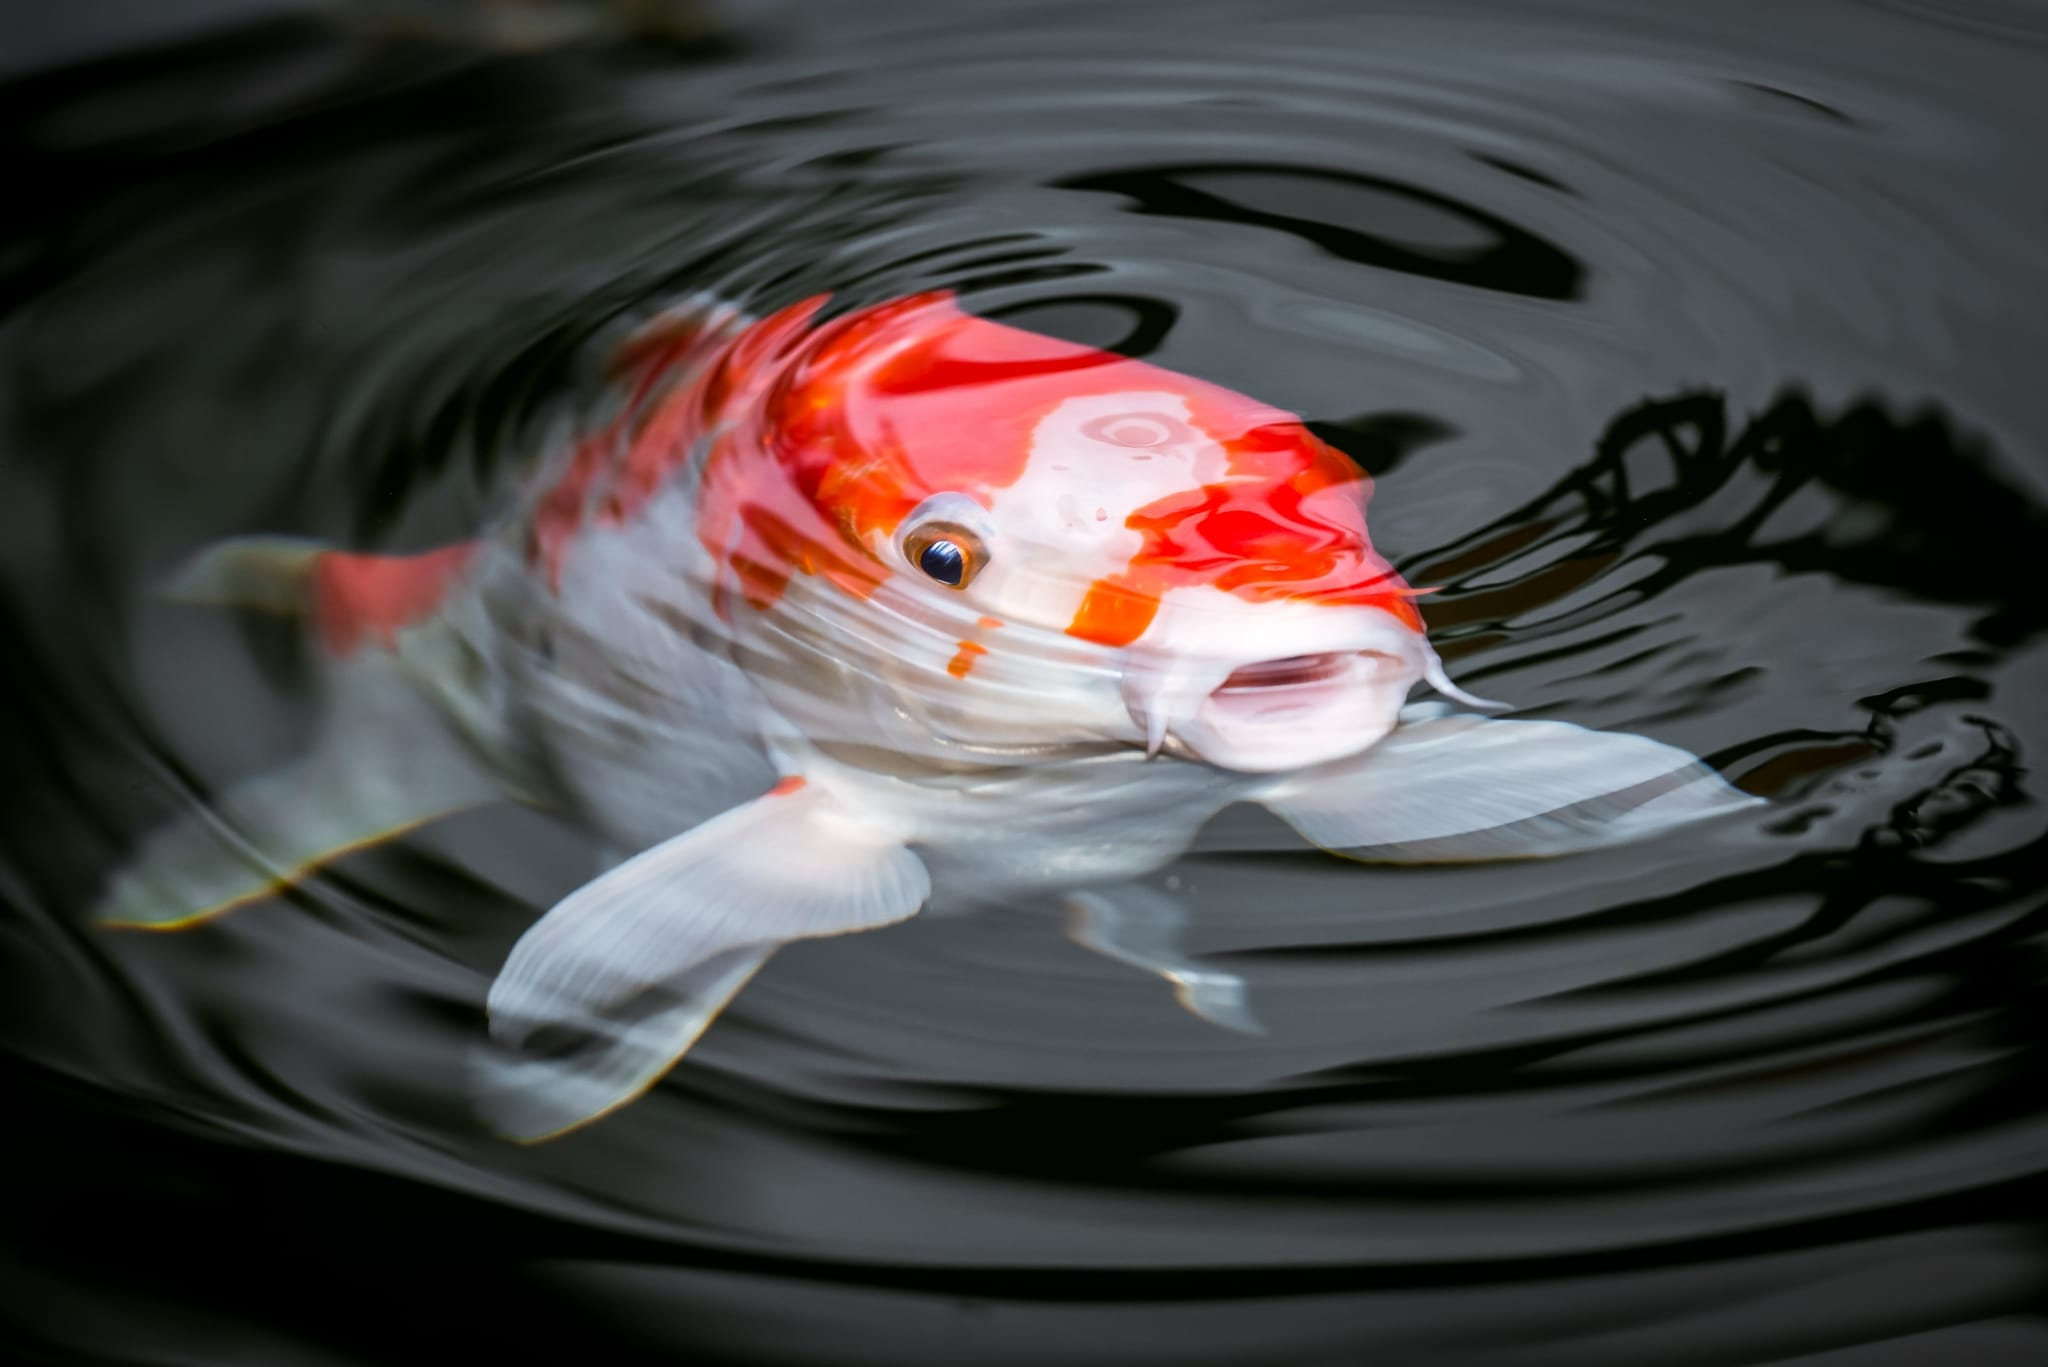 Koi Fish History Discussed and Meaning